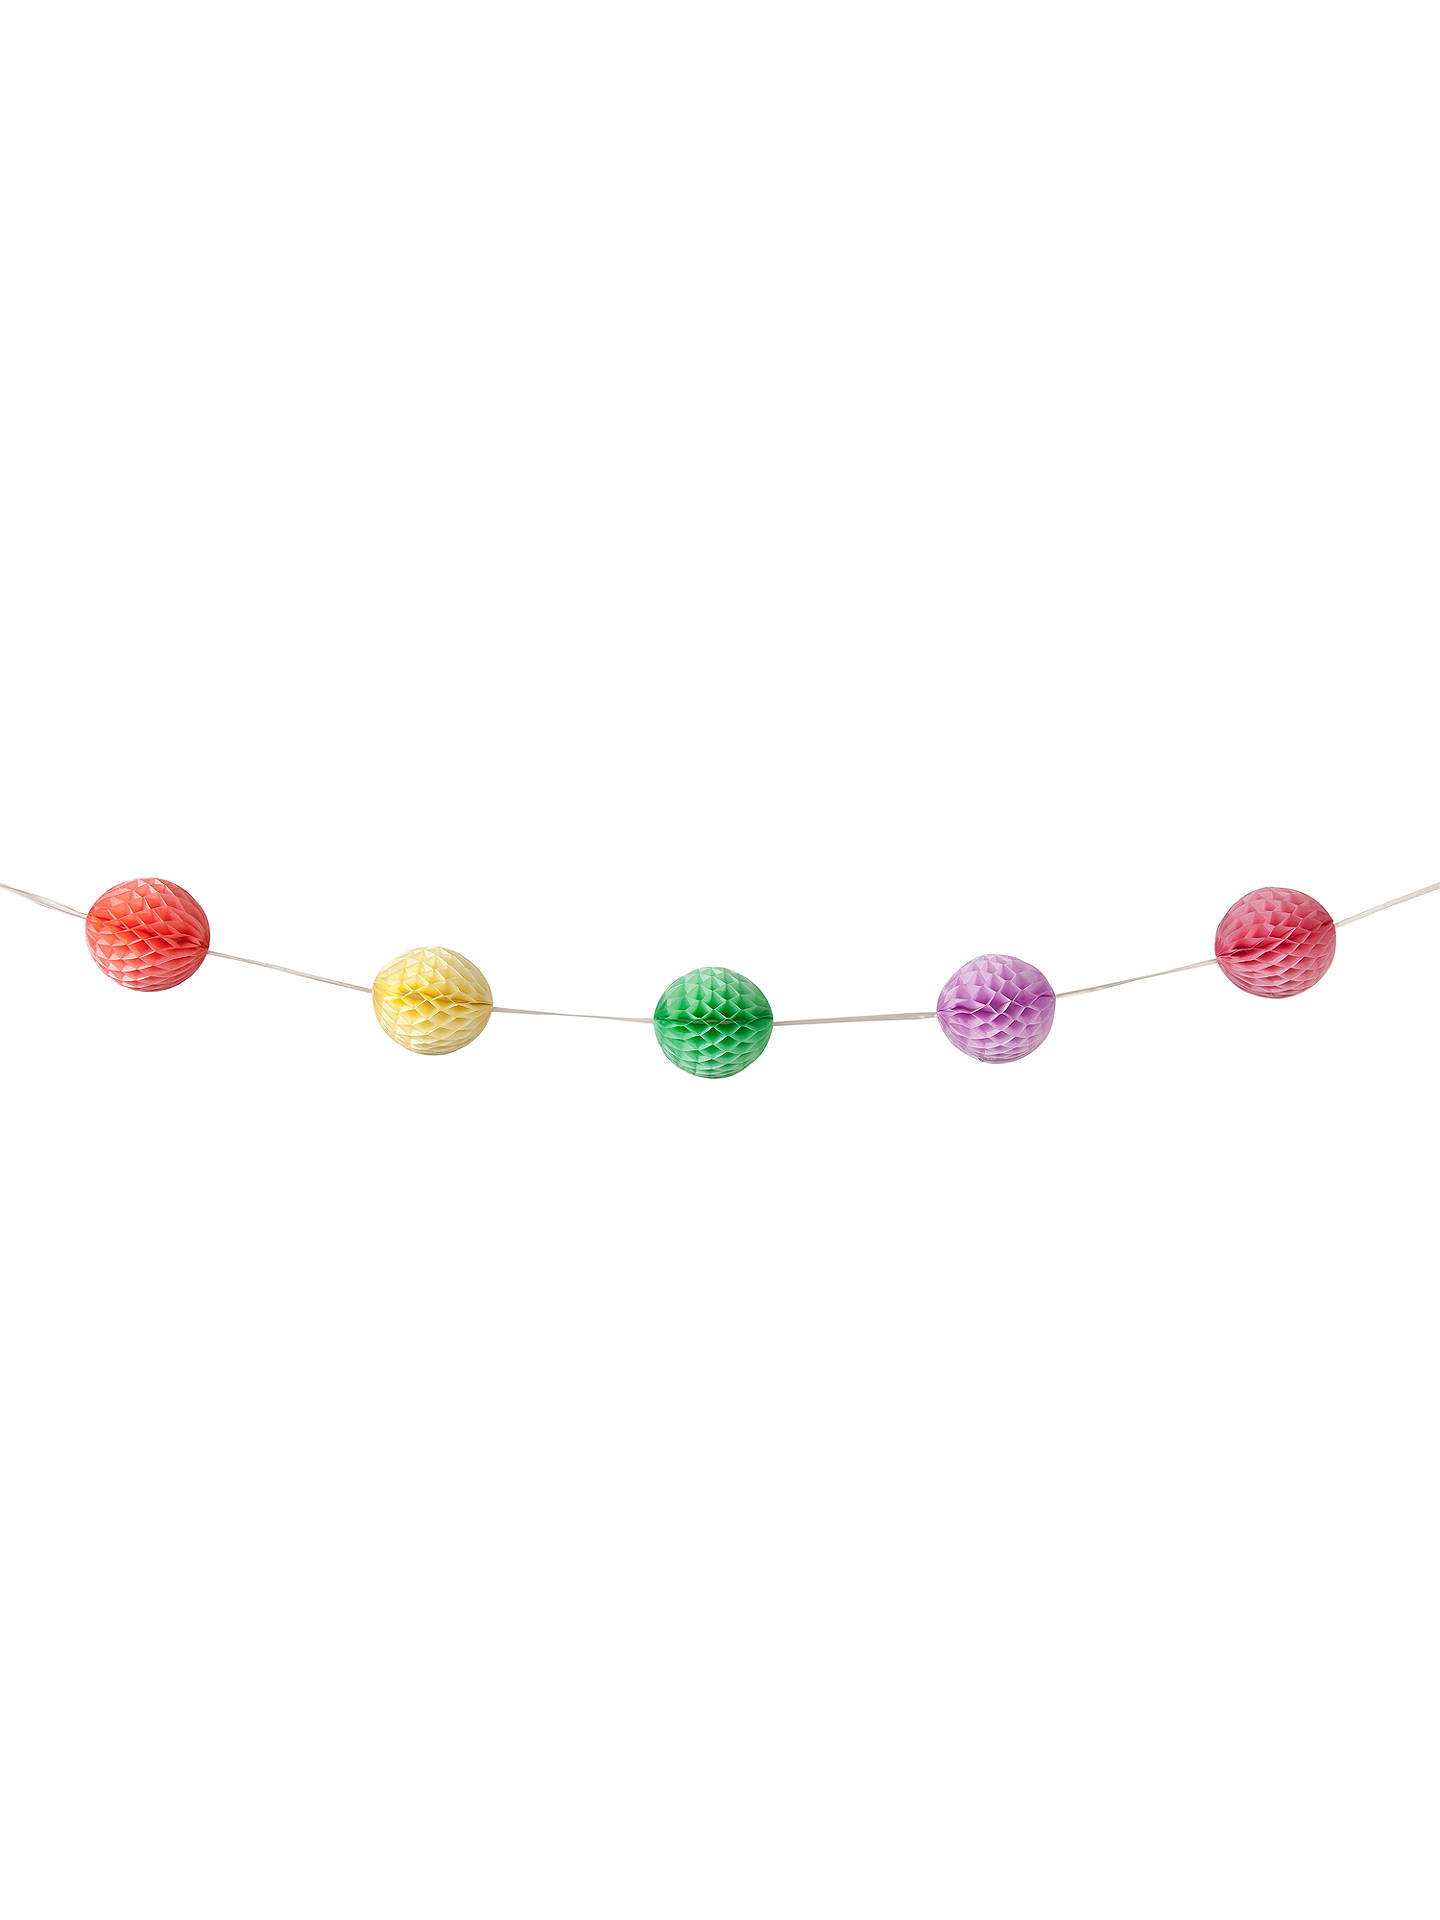 BuyTalking Tables Honeycomb Balls Garland Online at johnlewis.com